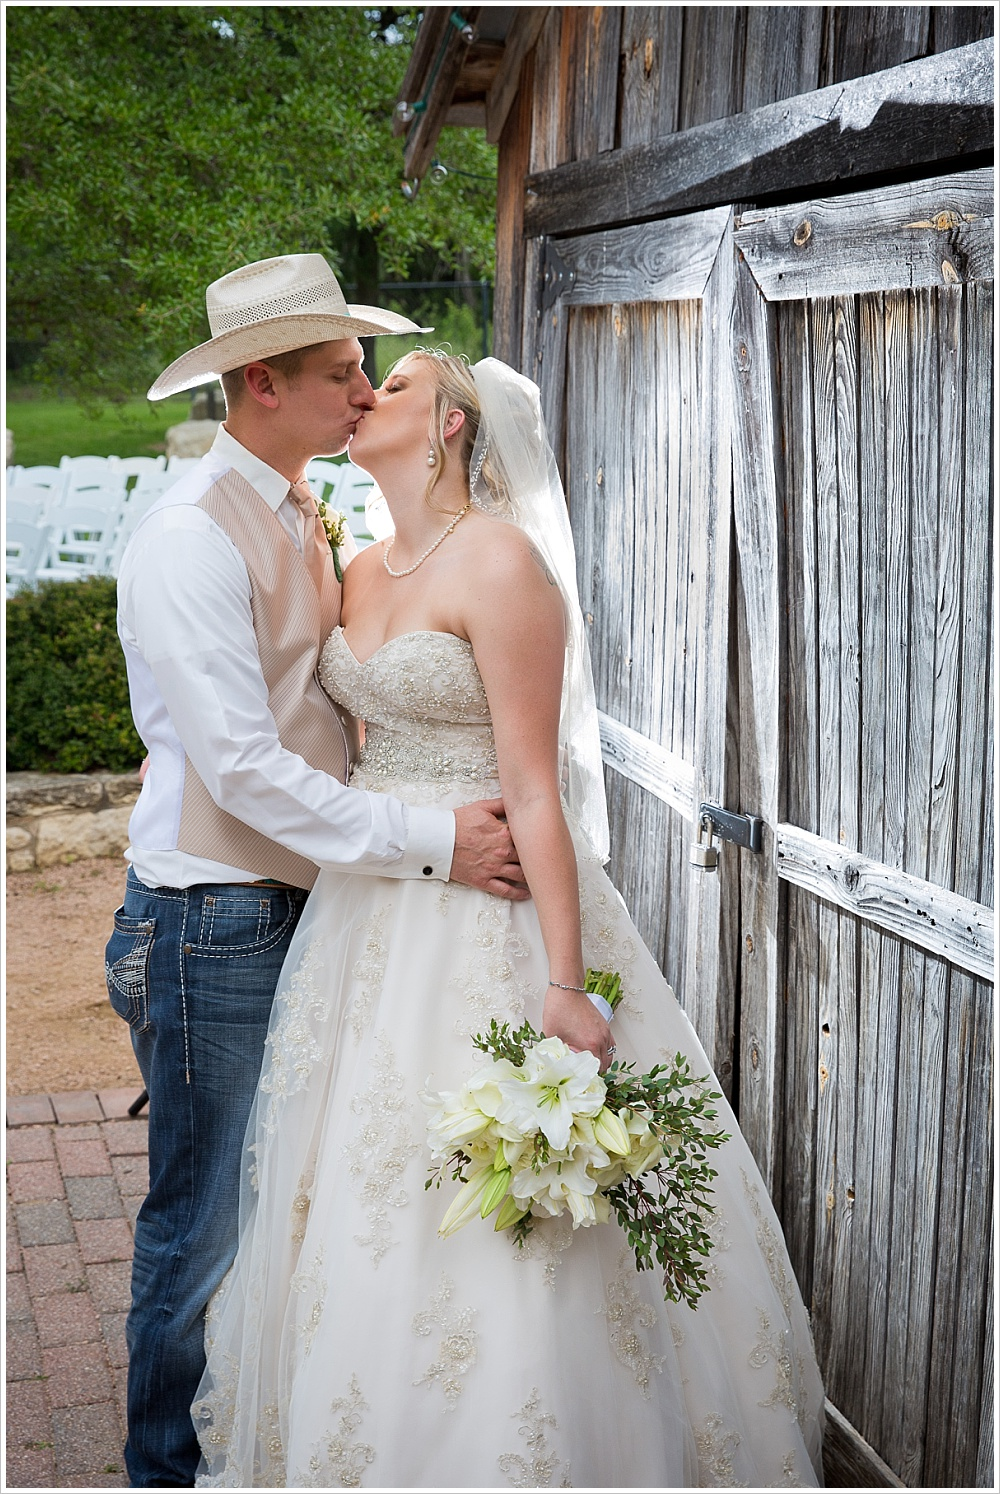 bride and groom kiss after ceremony | Carleen Bright Arboretum wedding venue in Woodway, TX | Jason & Melaina Photography